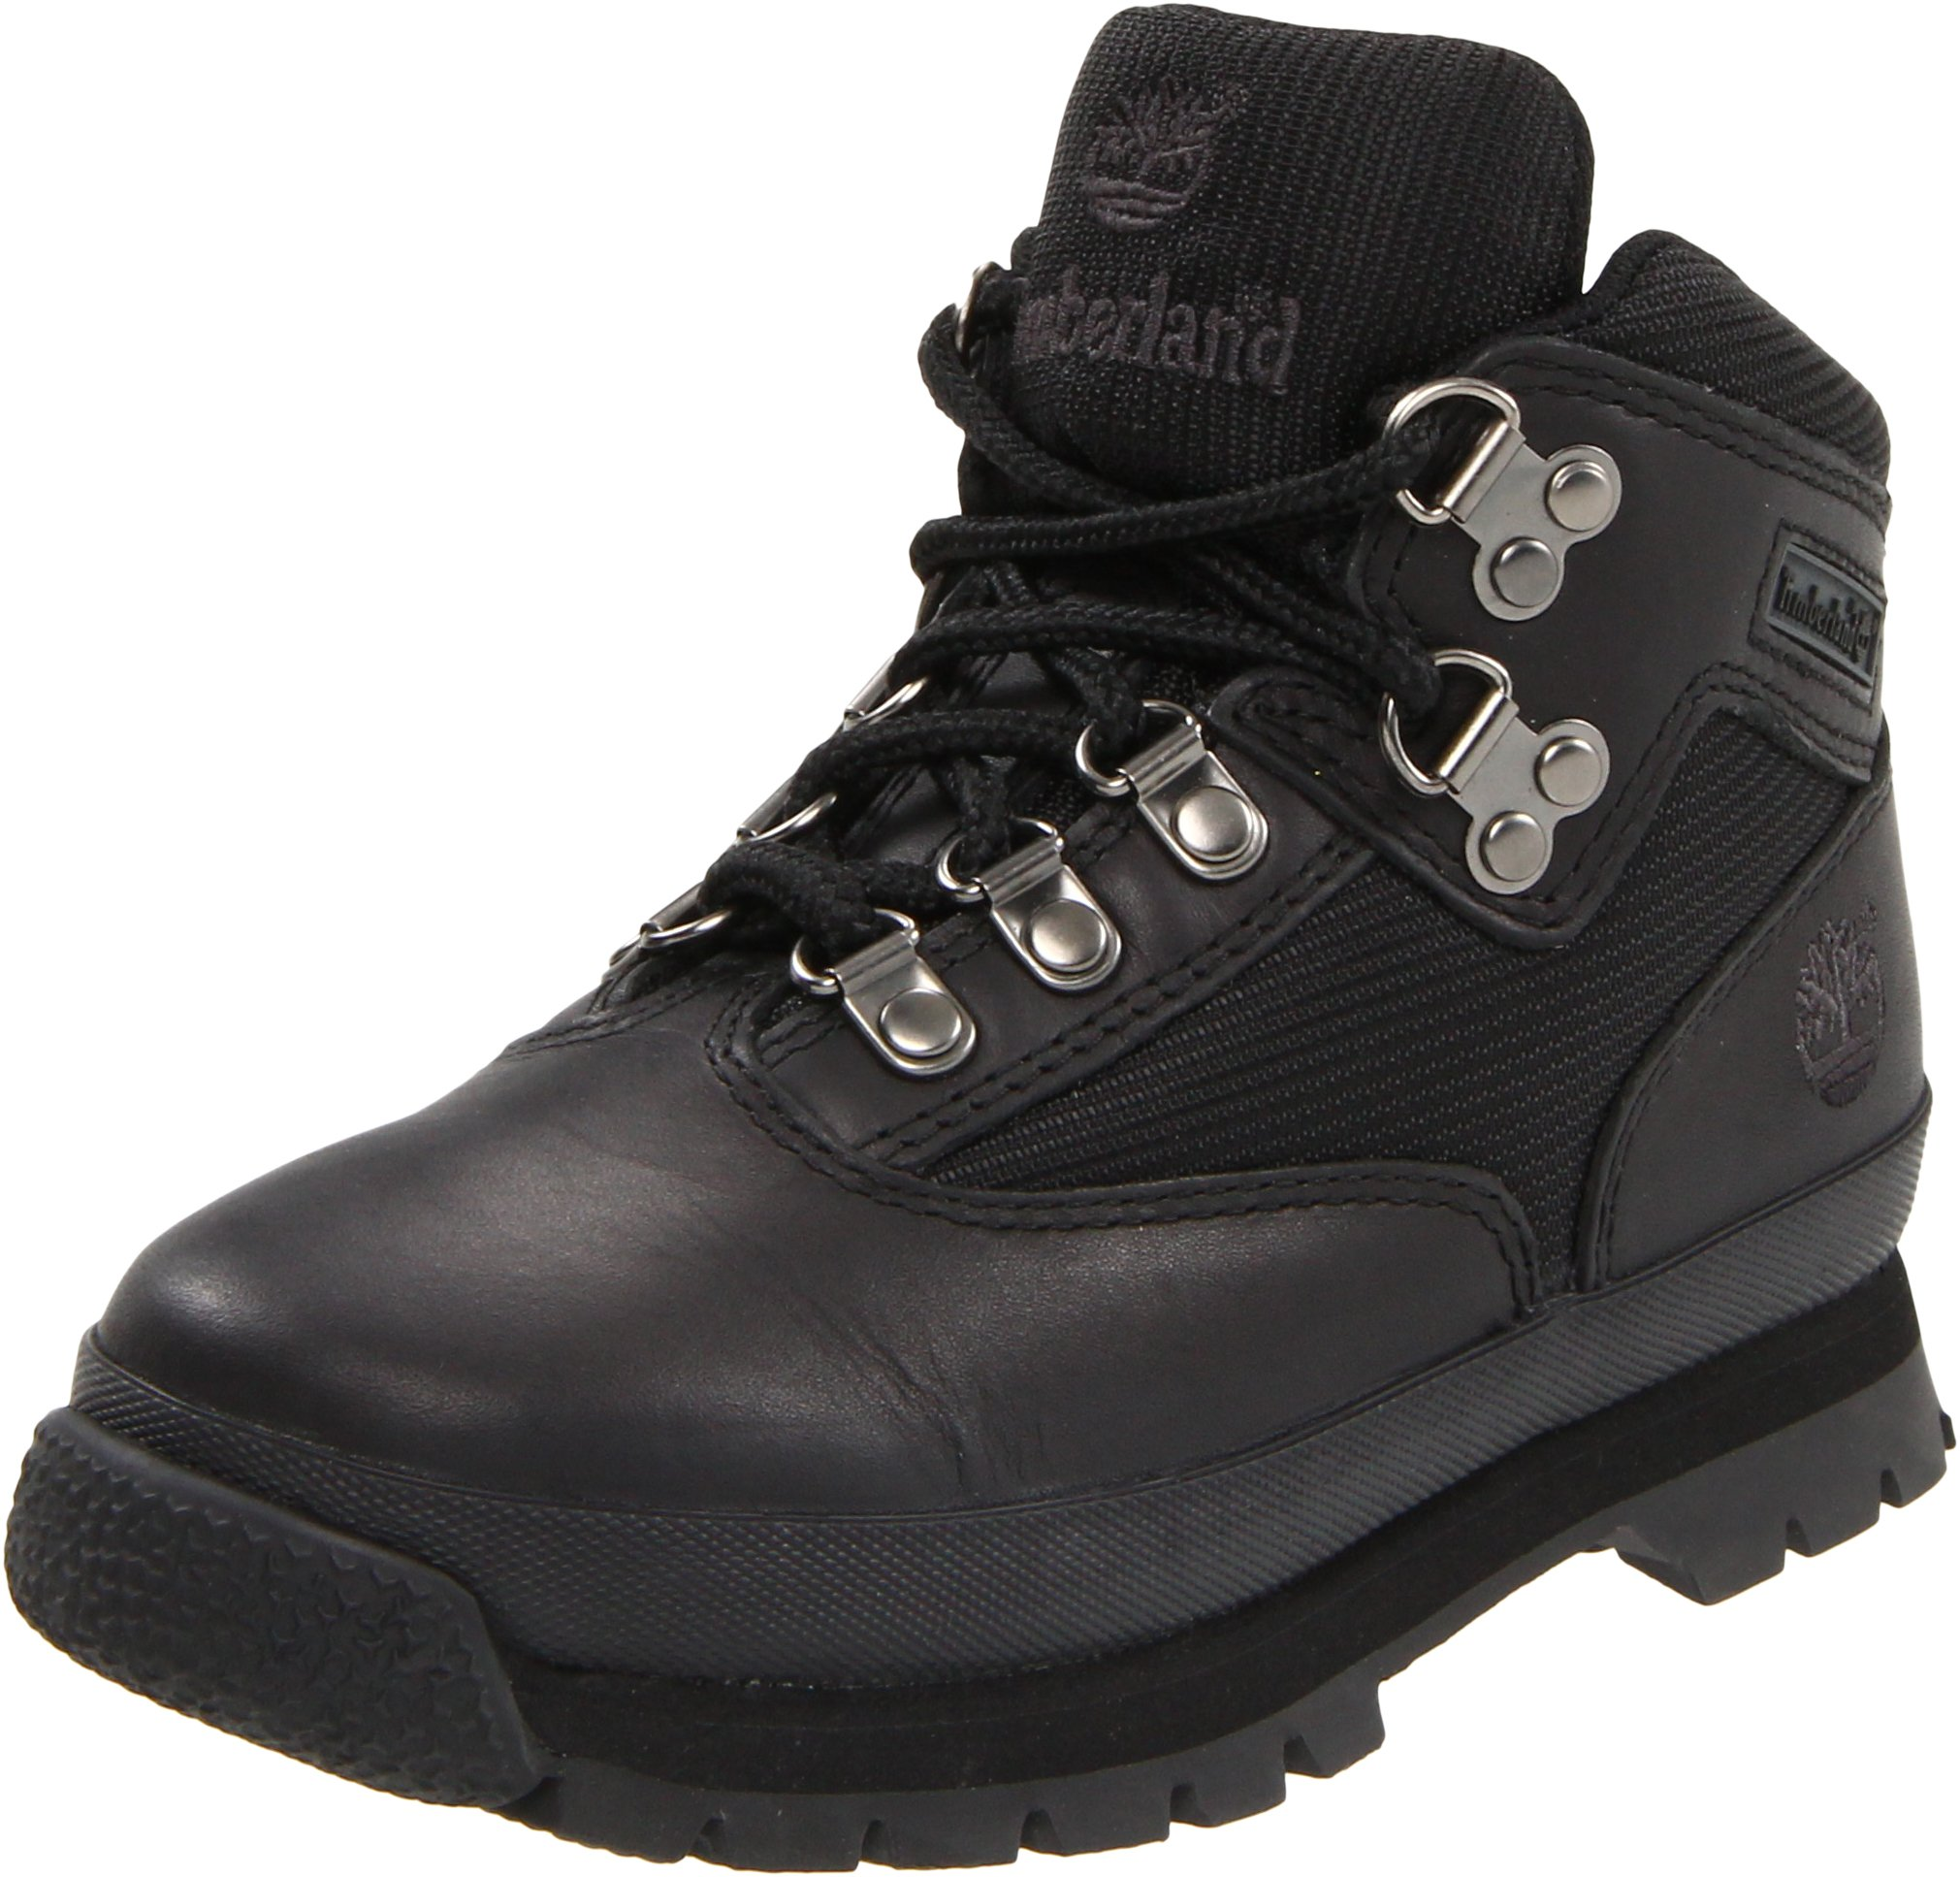 Timberland Euro Hiker Leather and Fabric Boot (Toddler/Little Kid/Big Kid),Black,10.5 M US Little Kid by Timberland